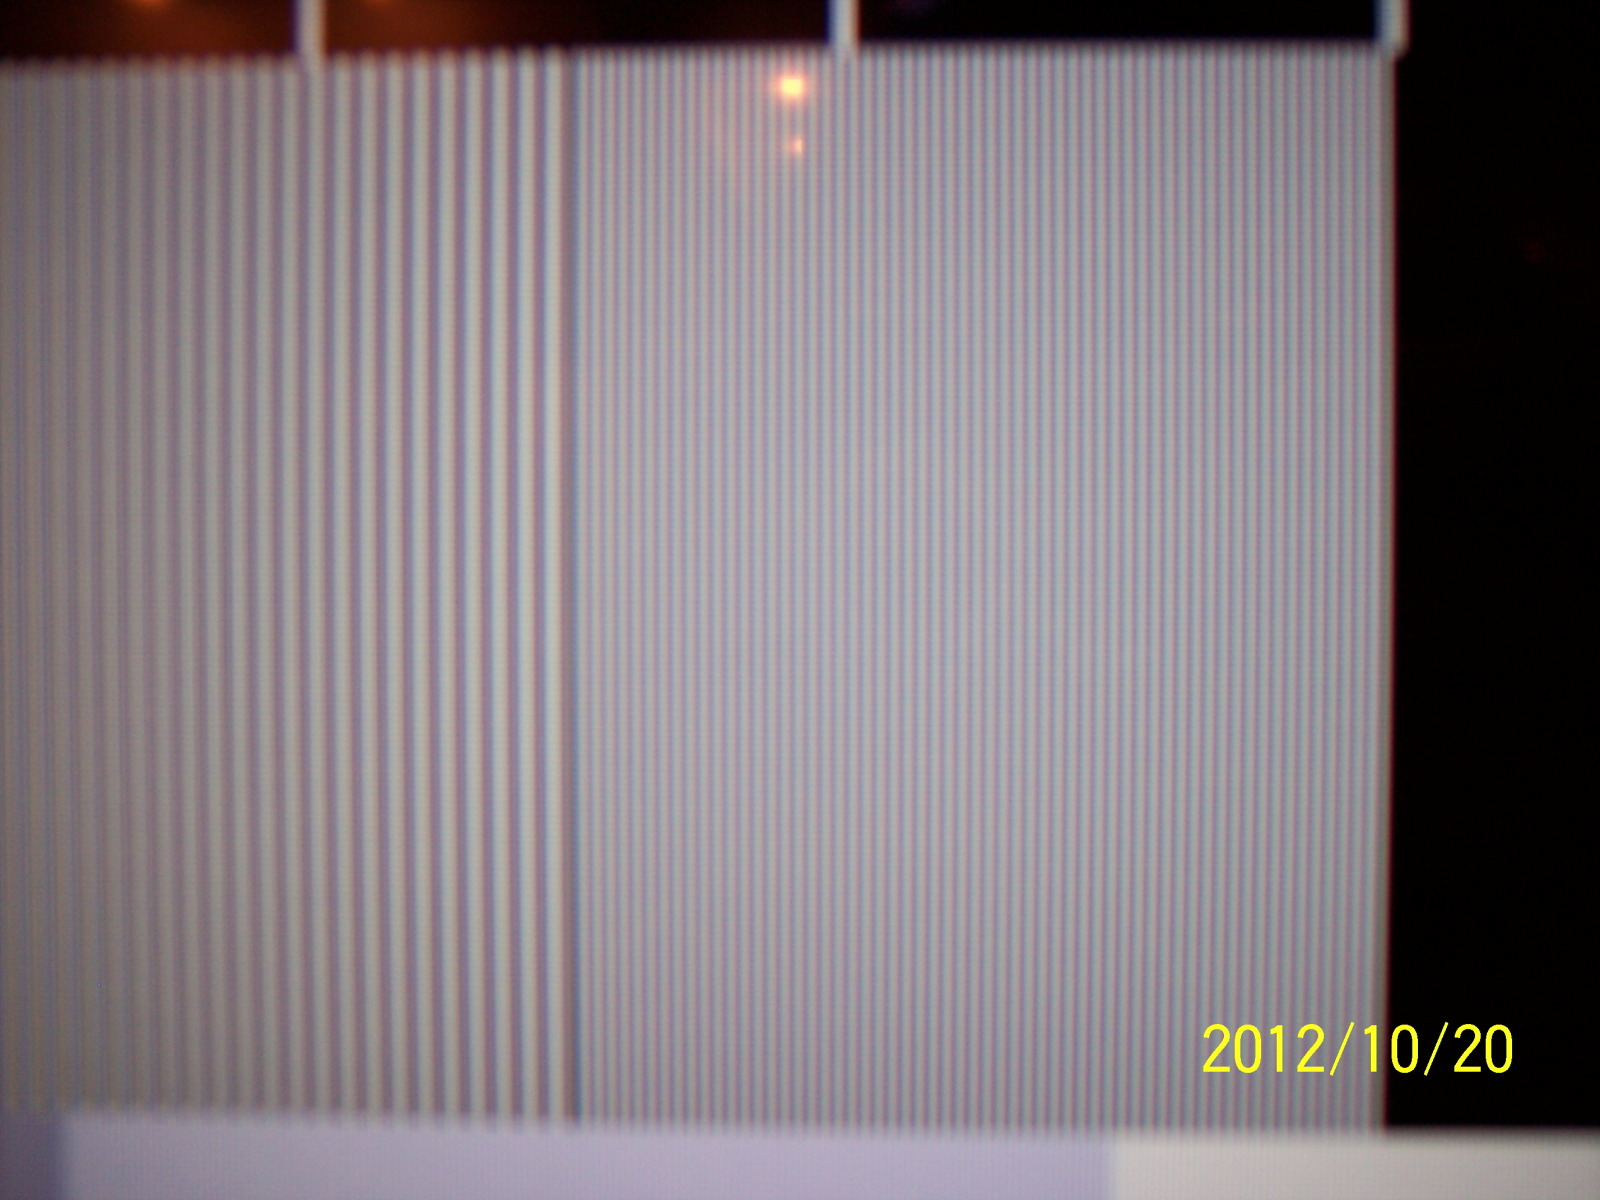 No image on display while cloned with the TV, but with image on TV 2hekn5l.jpg